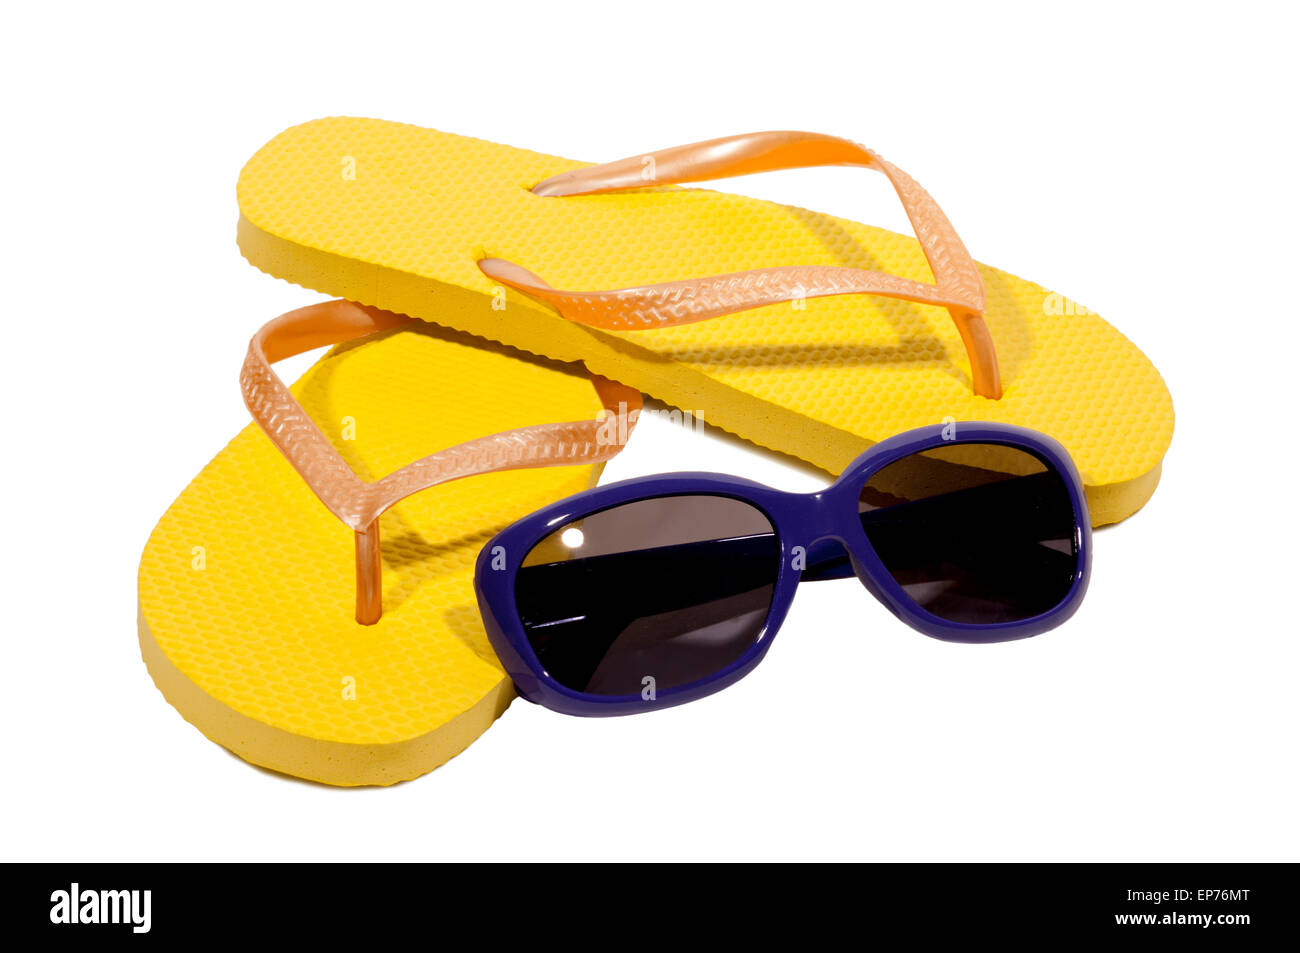 Summertime Fun With Flip Flops And Sunglasses on White Background. - Stock Image